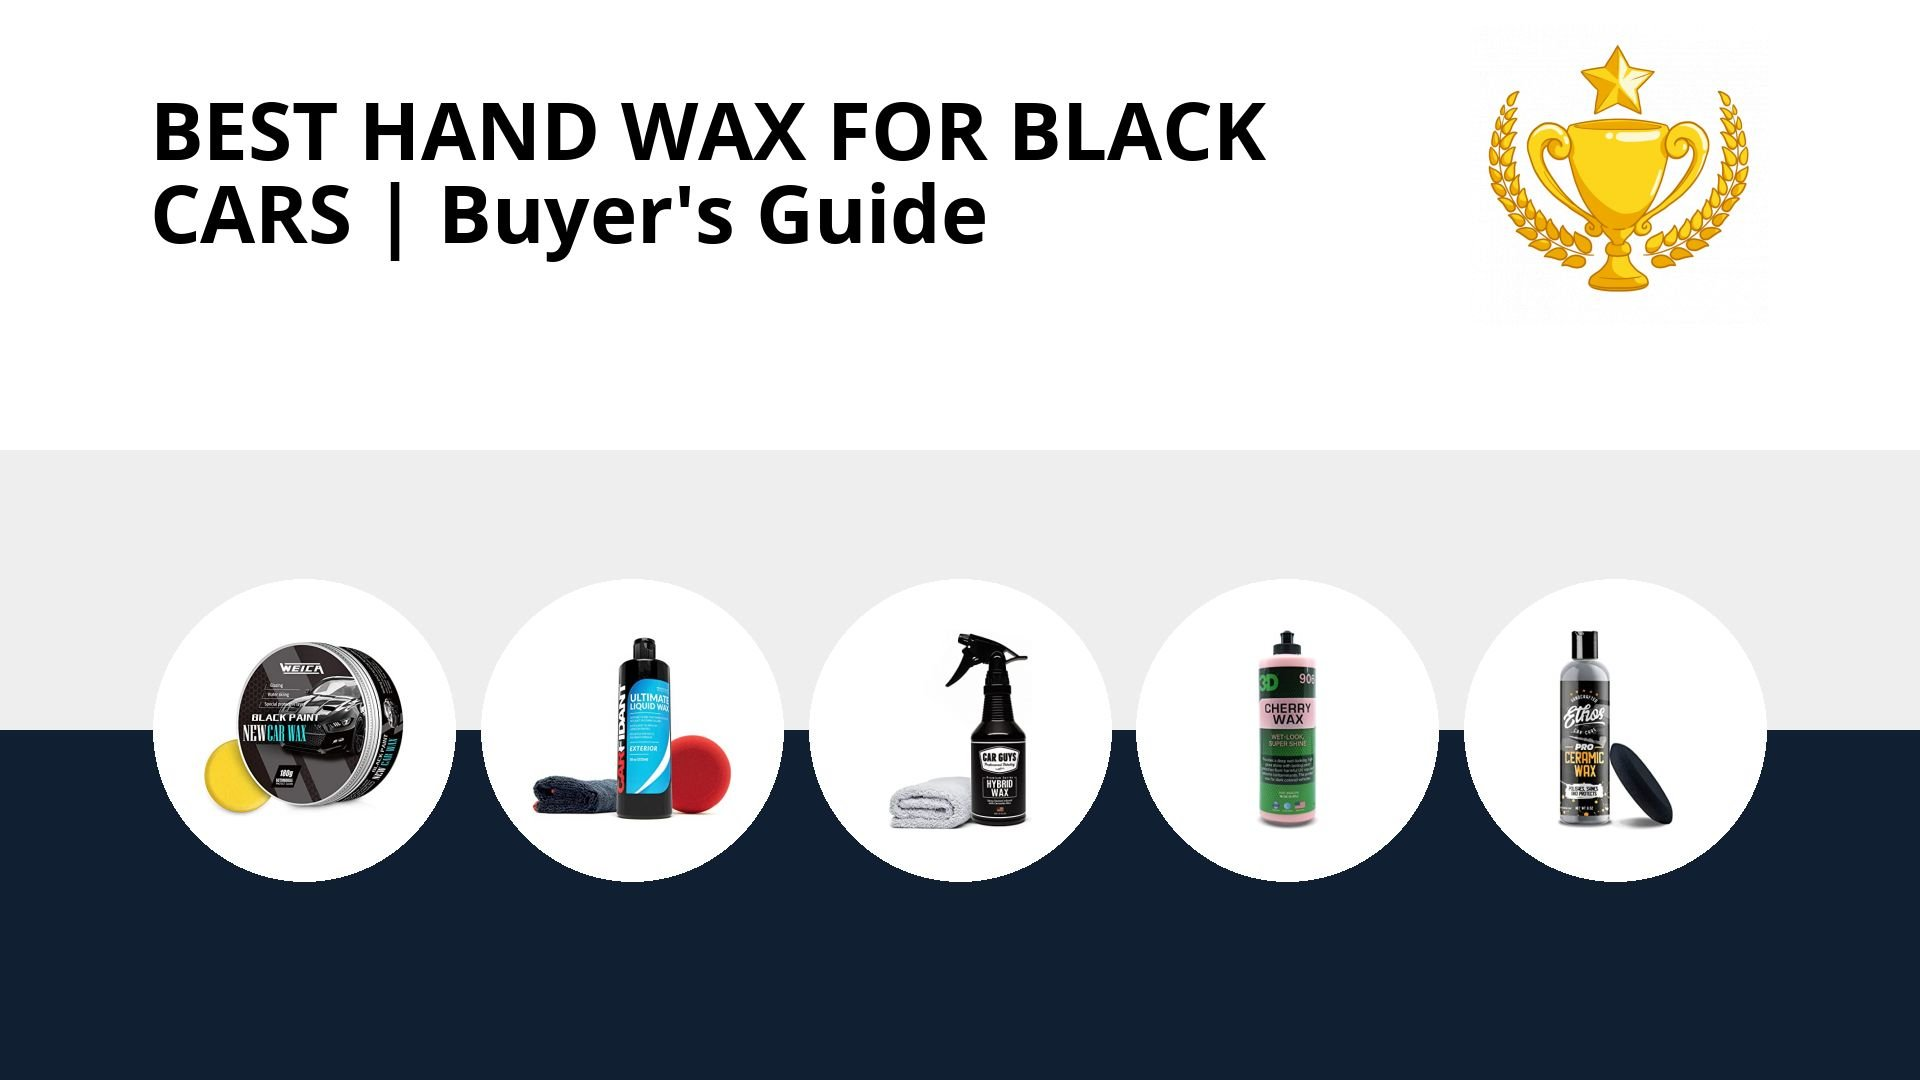 Best Hand Wax For Black Cars: image